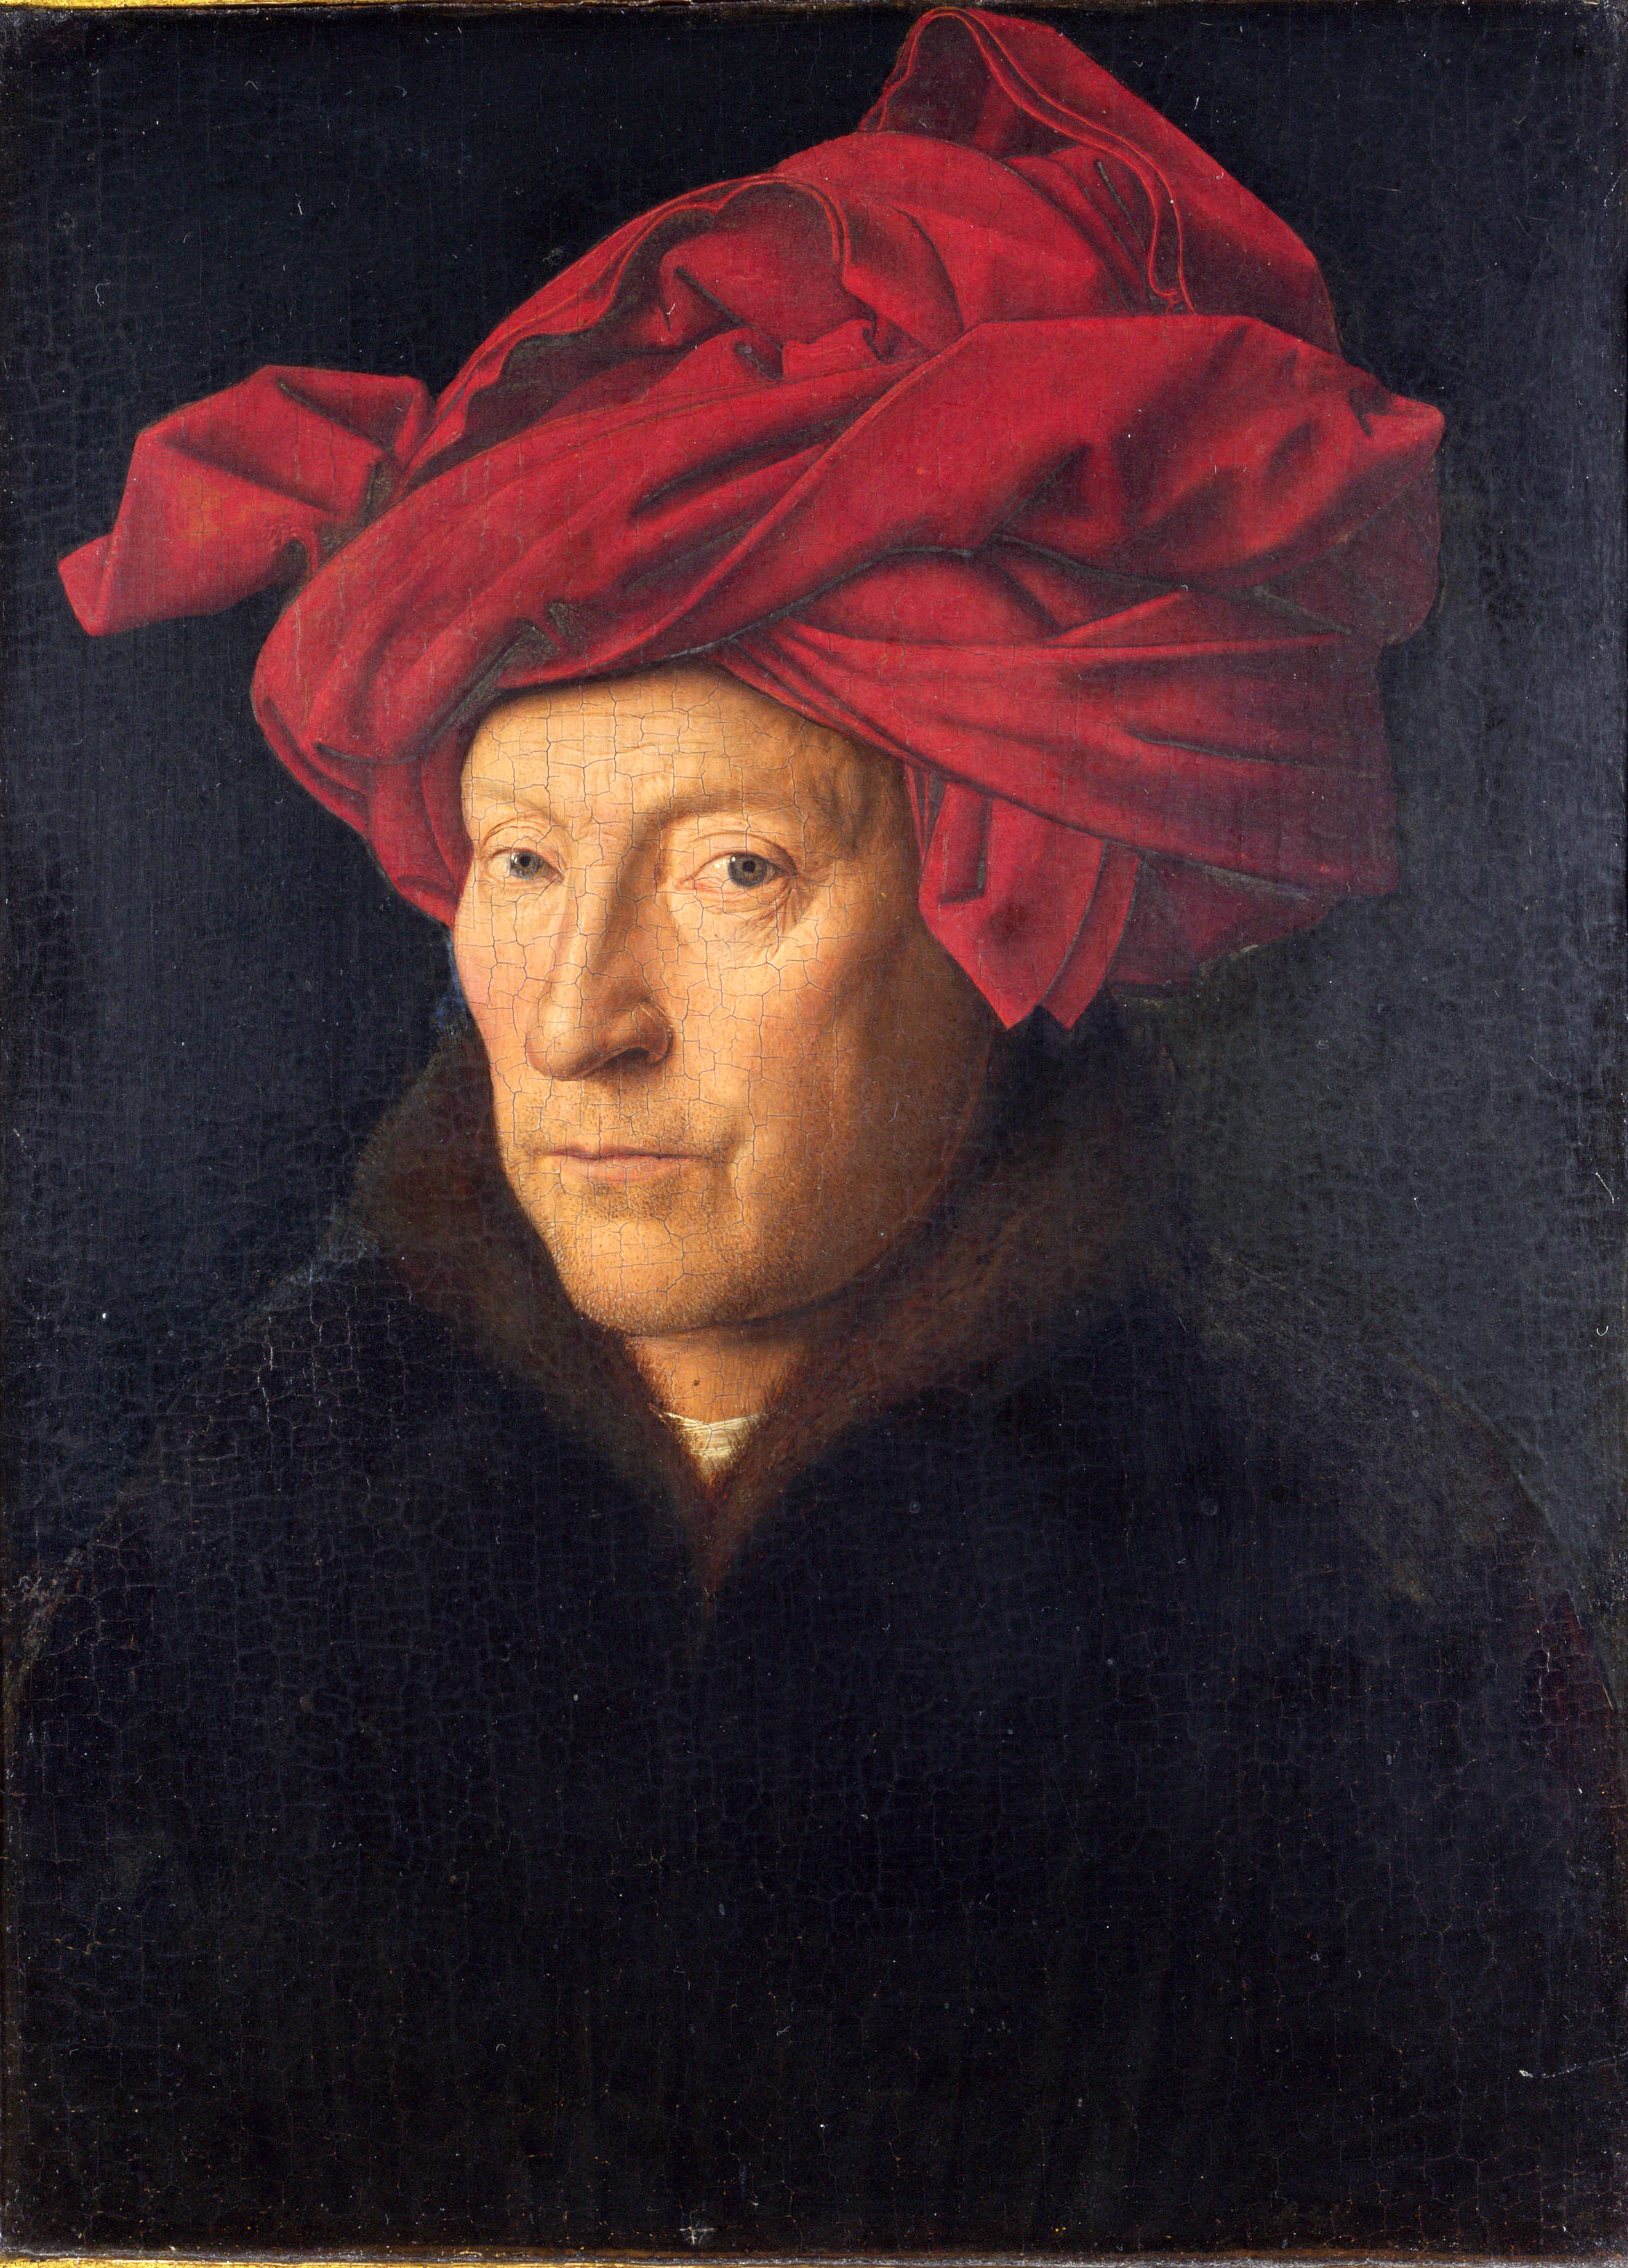 van Eyck, Portrait of a Man in a Red Turban